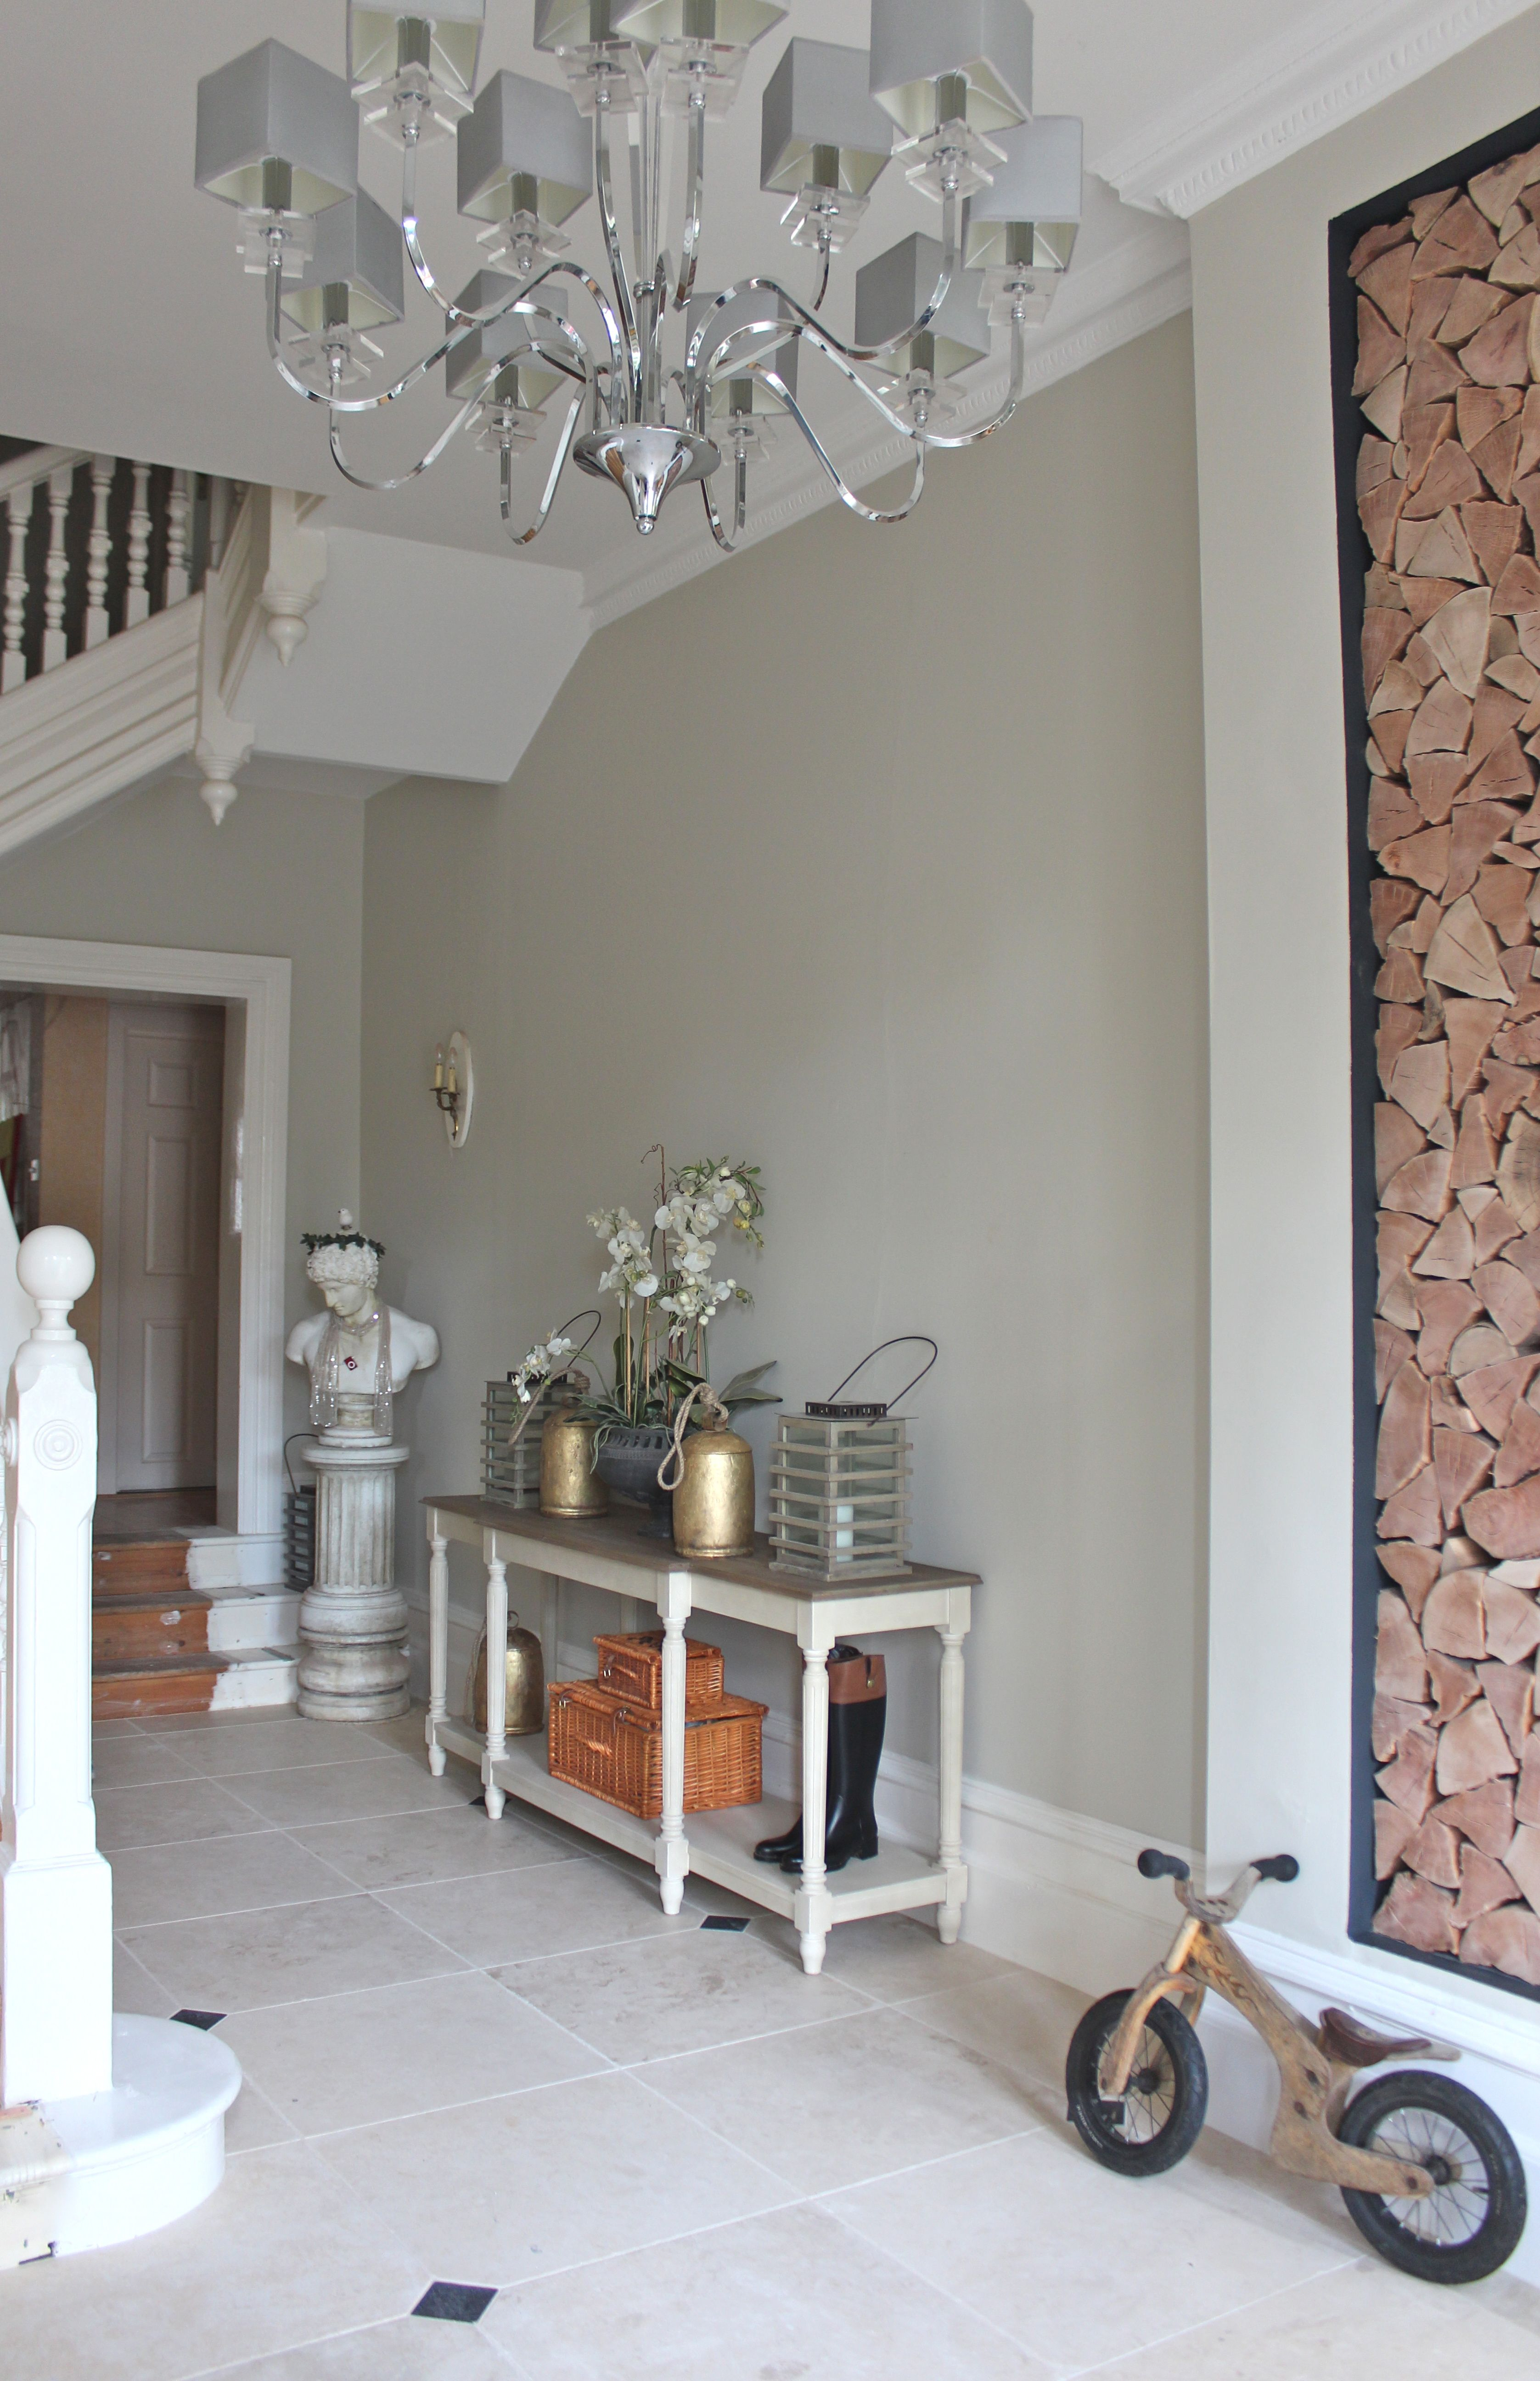 Best Here It Is The Farrow And Ball Shaded White Home Tour 400 x 300